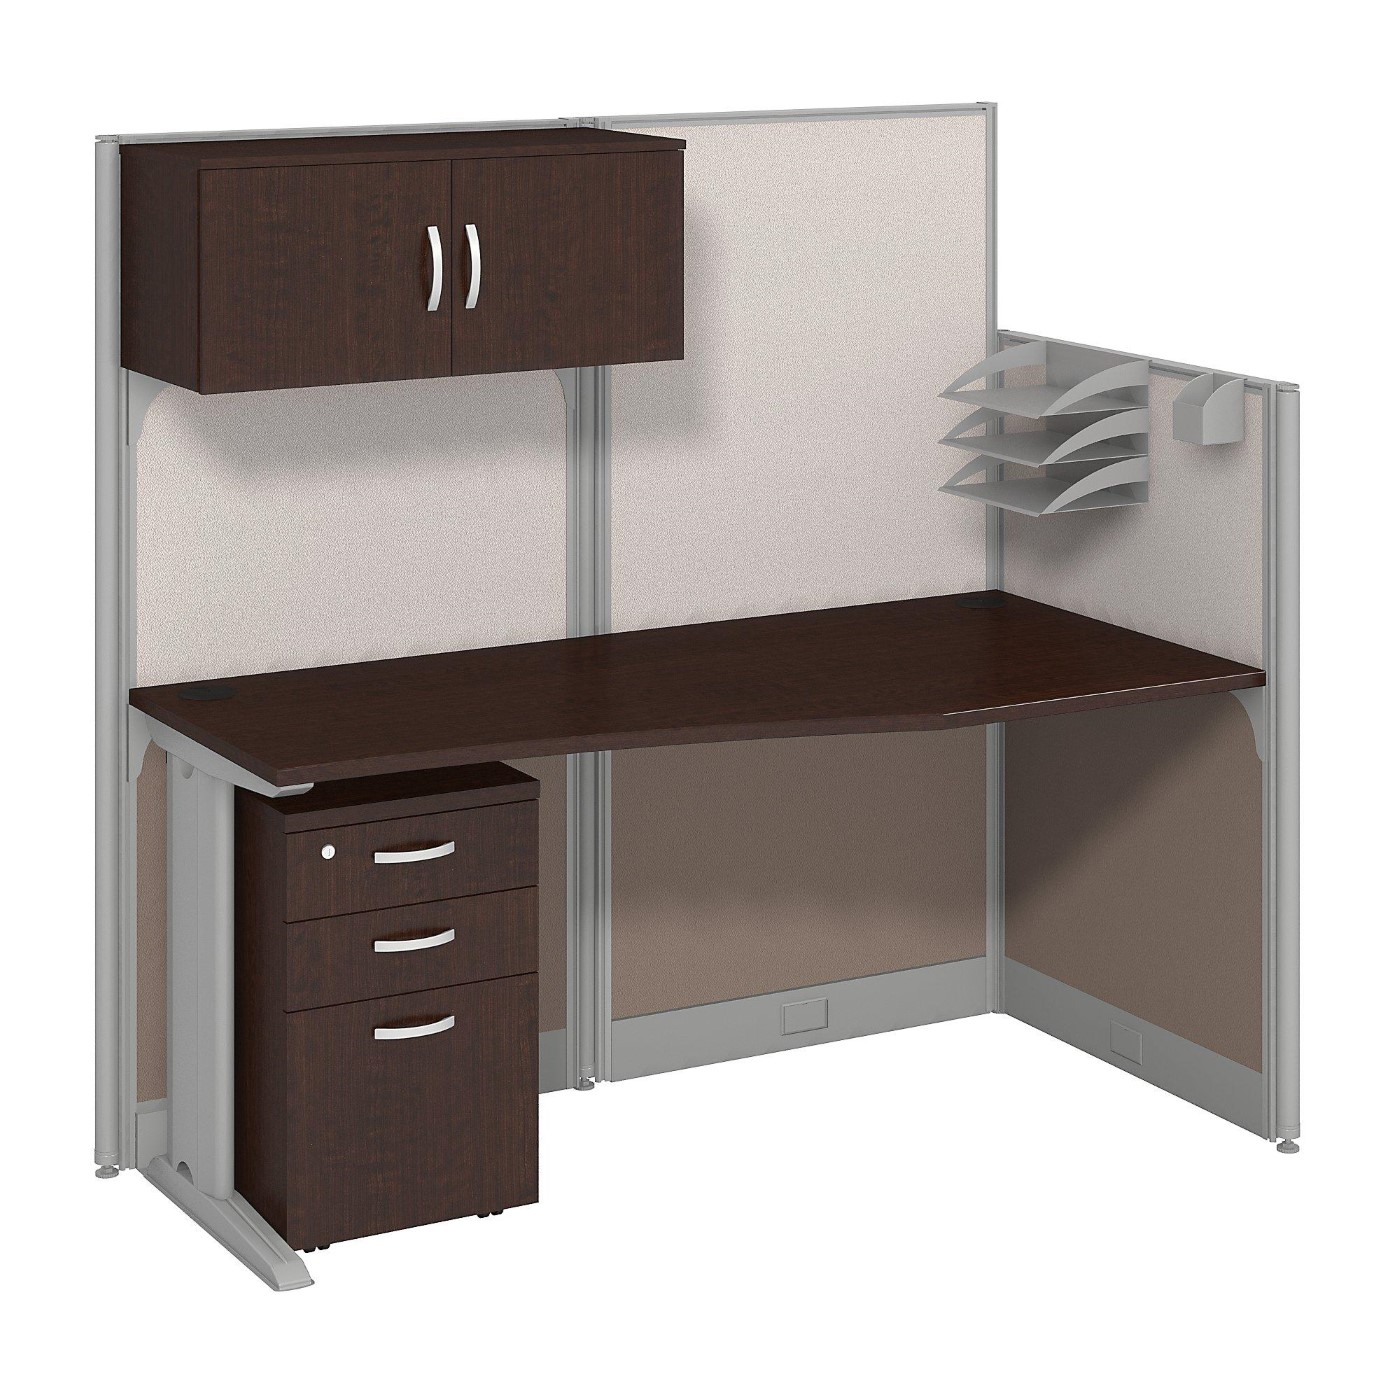 BUSH BUSINESS FURNITURE OFFICE IN AN HOUR 65W X 33D CUBICLE WORKSTATION WITH STORAGE. FREE SHIPPING.